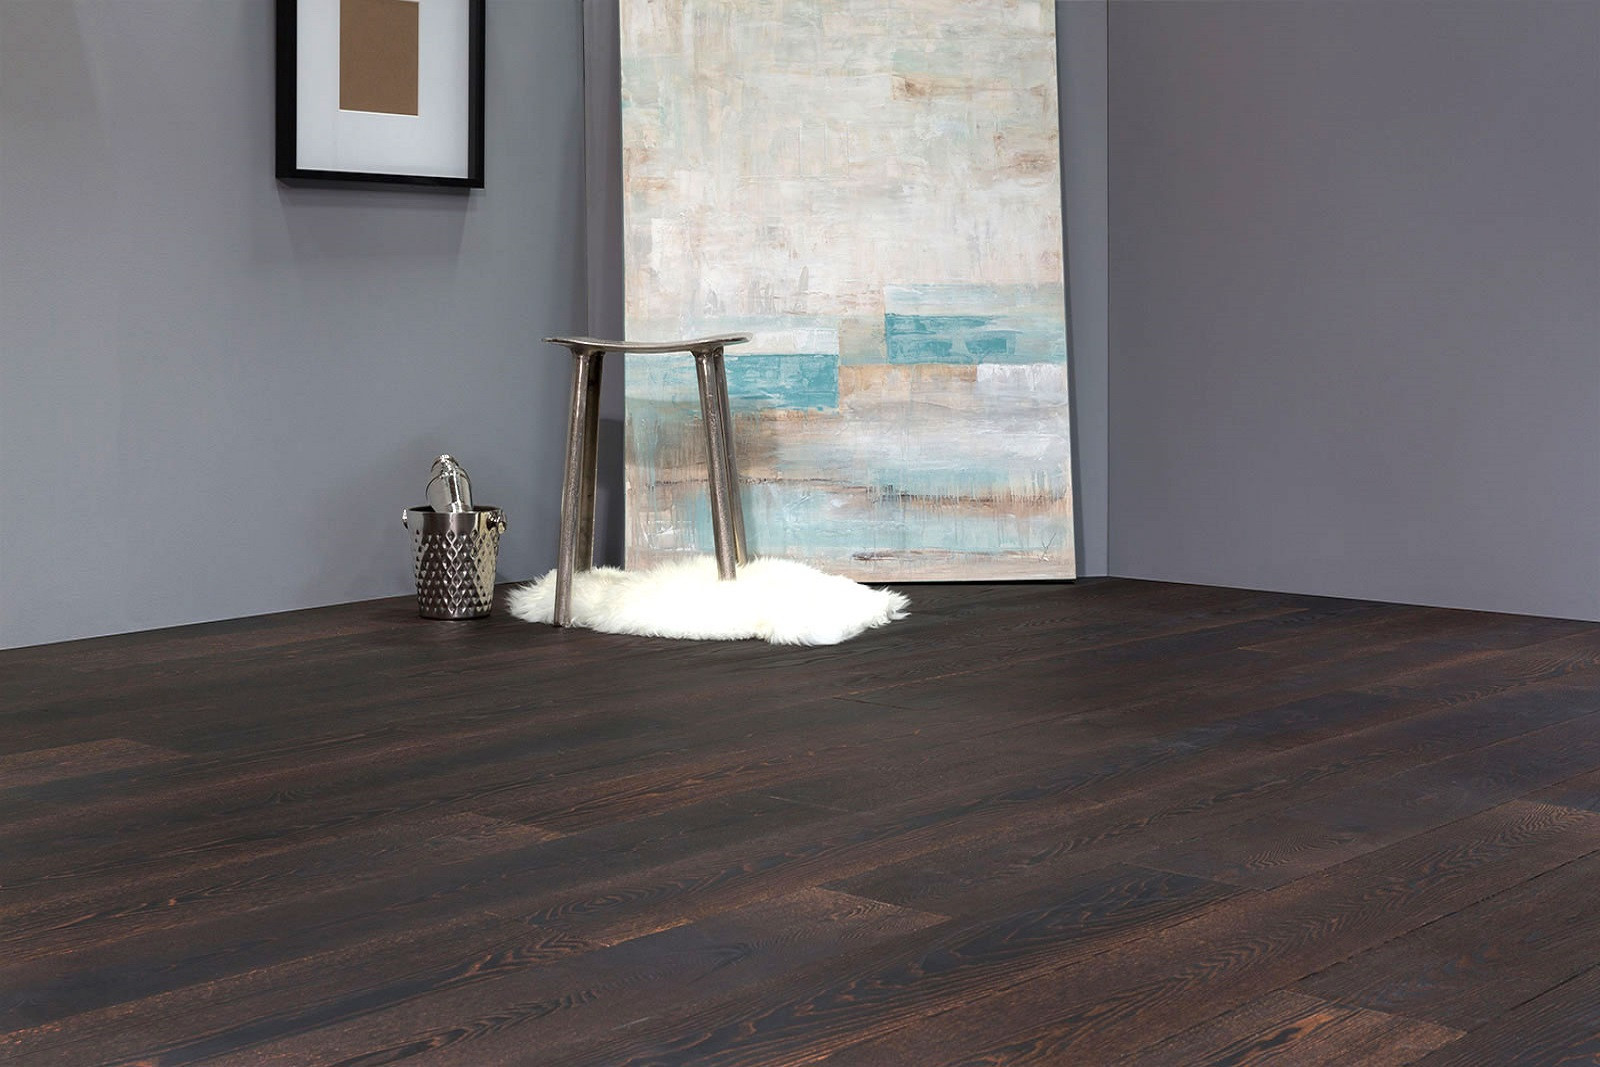 10 Best Provenza Hardwood Flooring Reviews 2021 free download provenza hardwood flooring reviews of all length items throughout duchateau terra nile duchateau terra panga